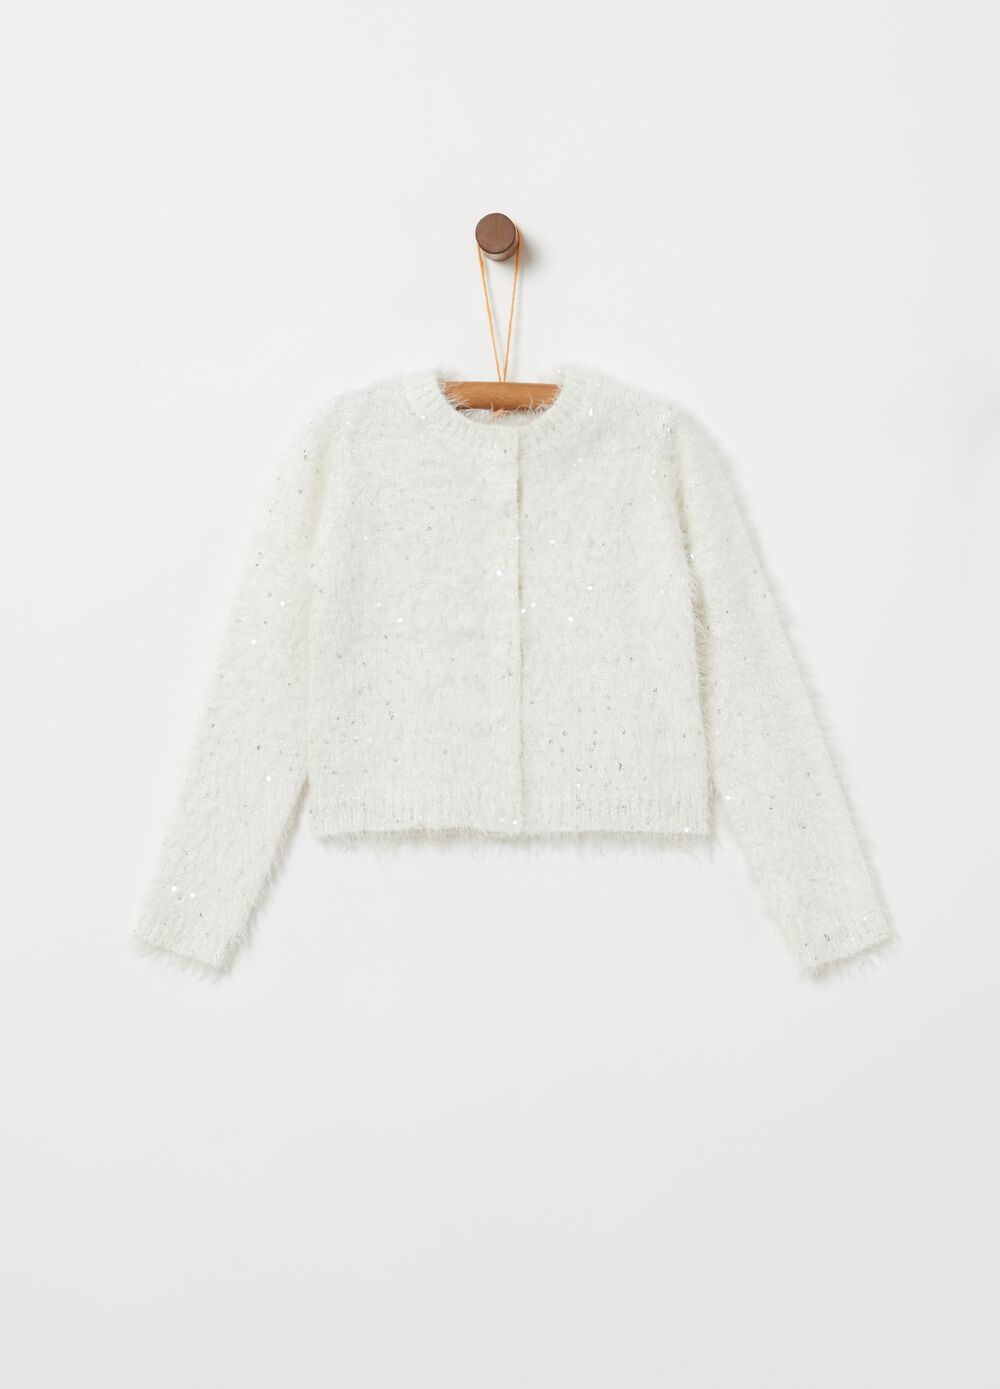 Knitted cardigan with fur and sequins